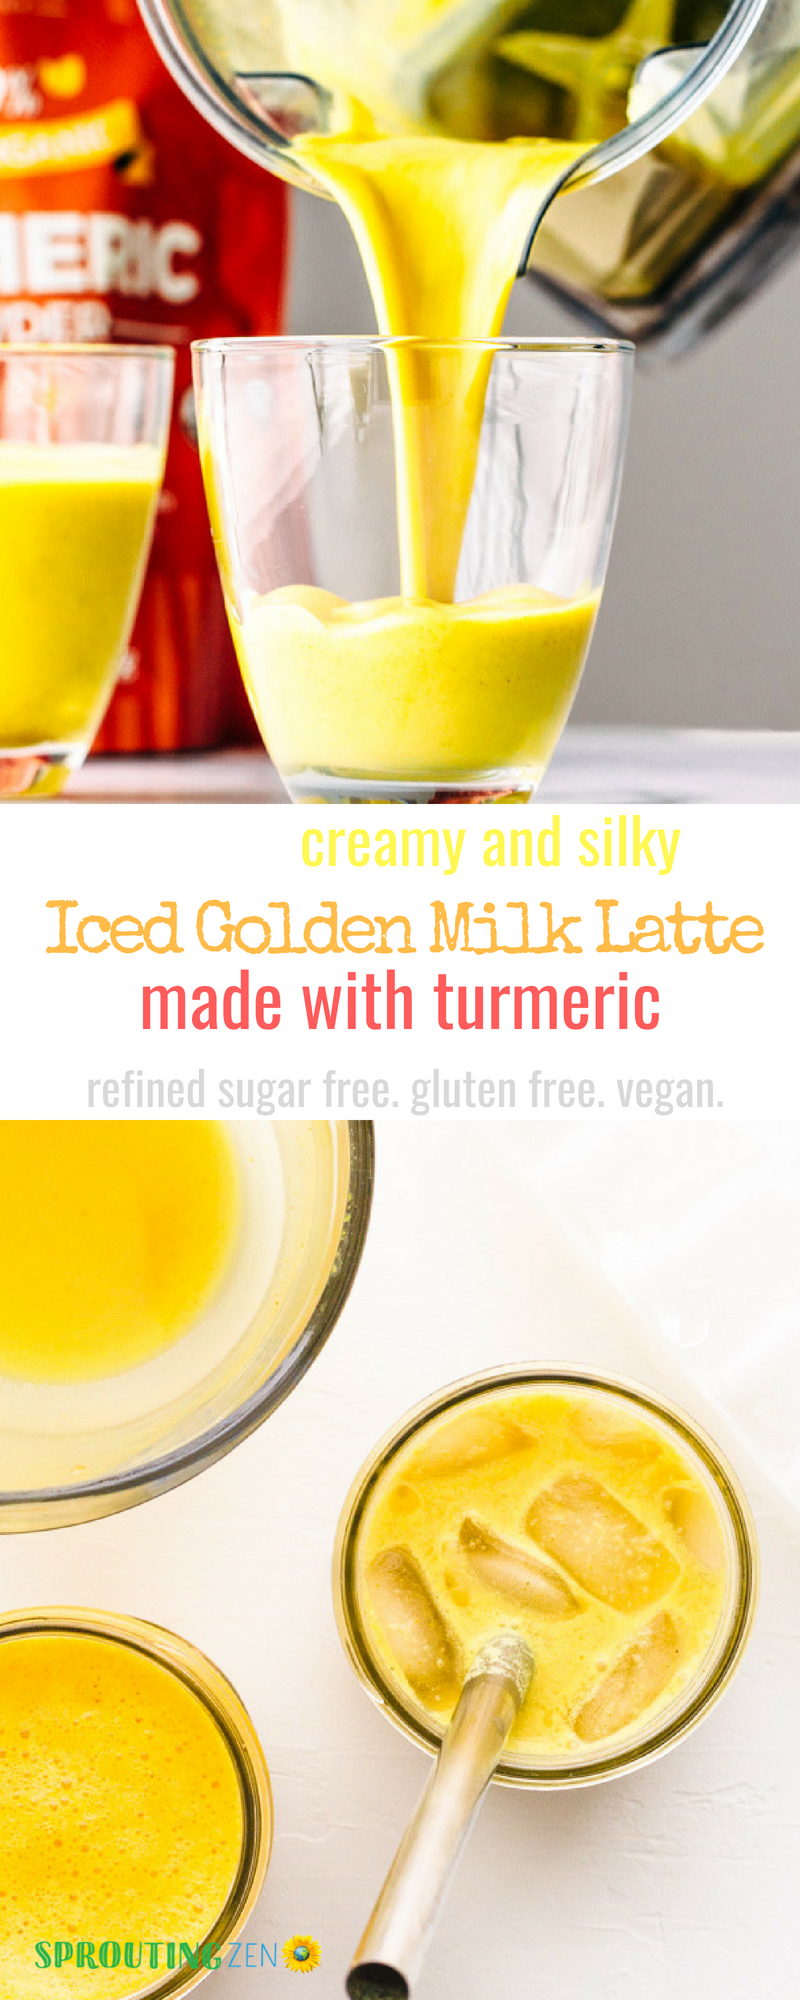 Creamy and silky Iced Golden Milk Latte made with turmeric! #breakfast #summer #vegan #healthy